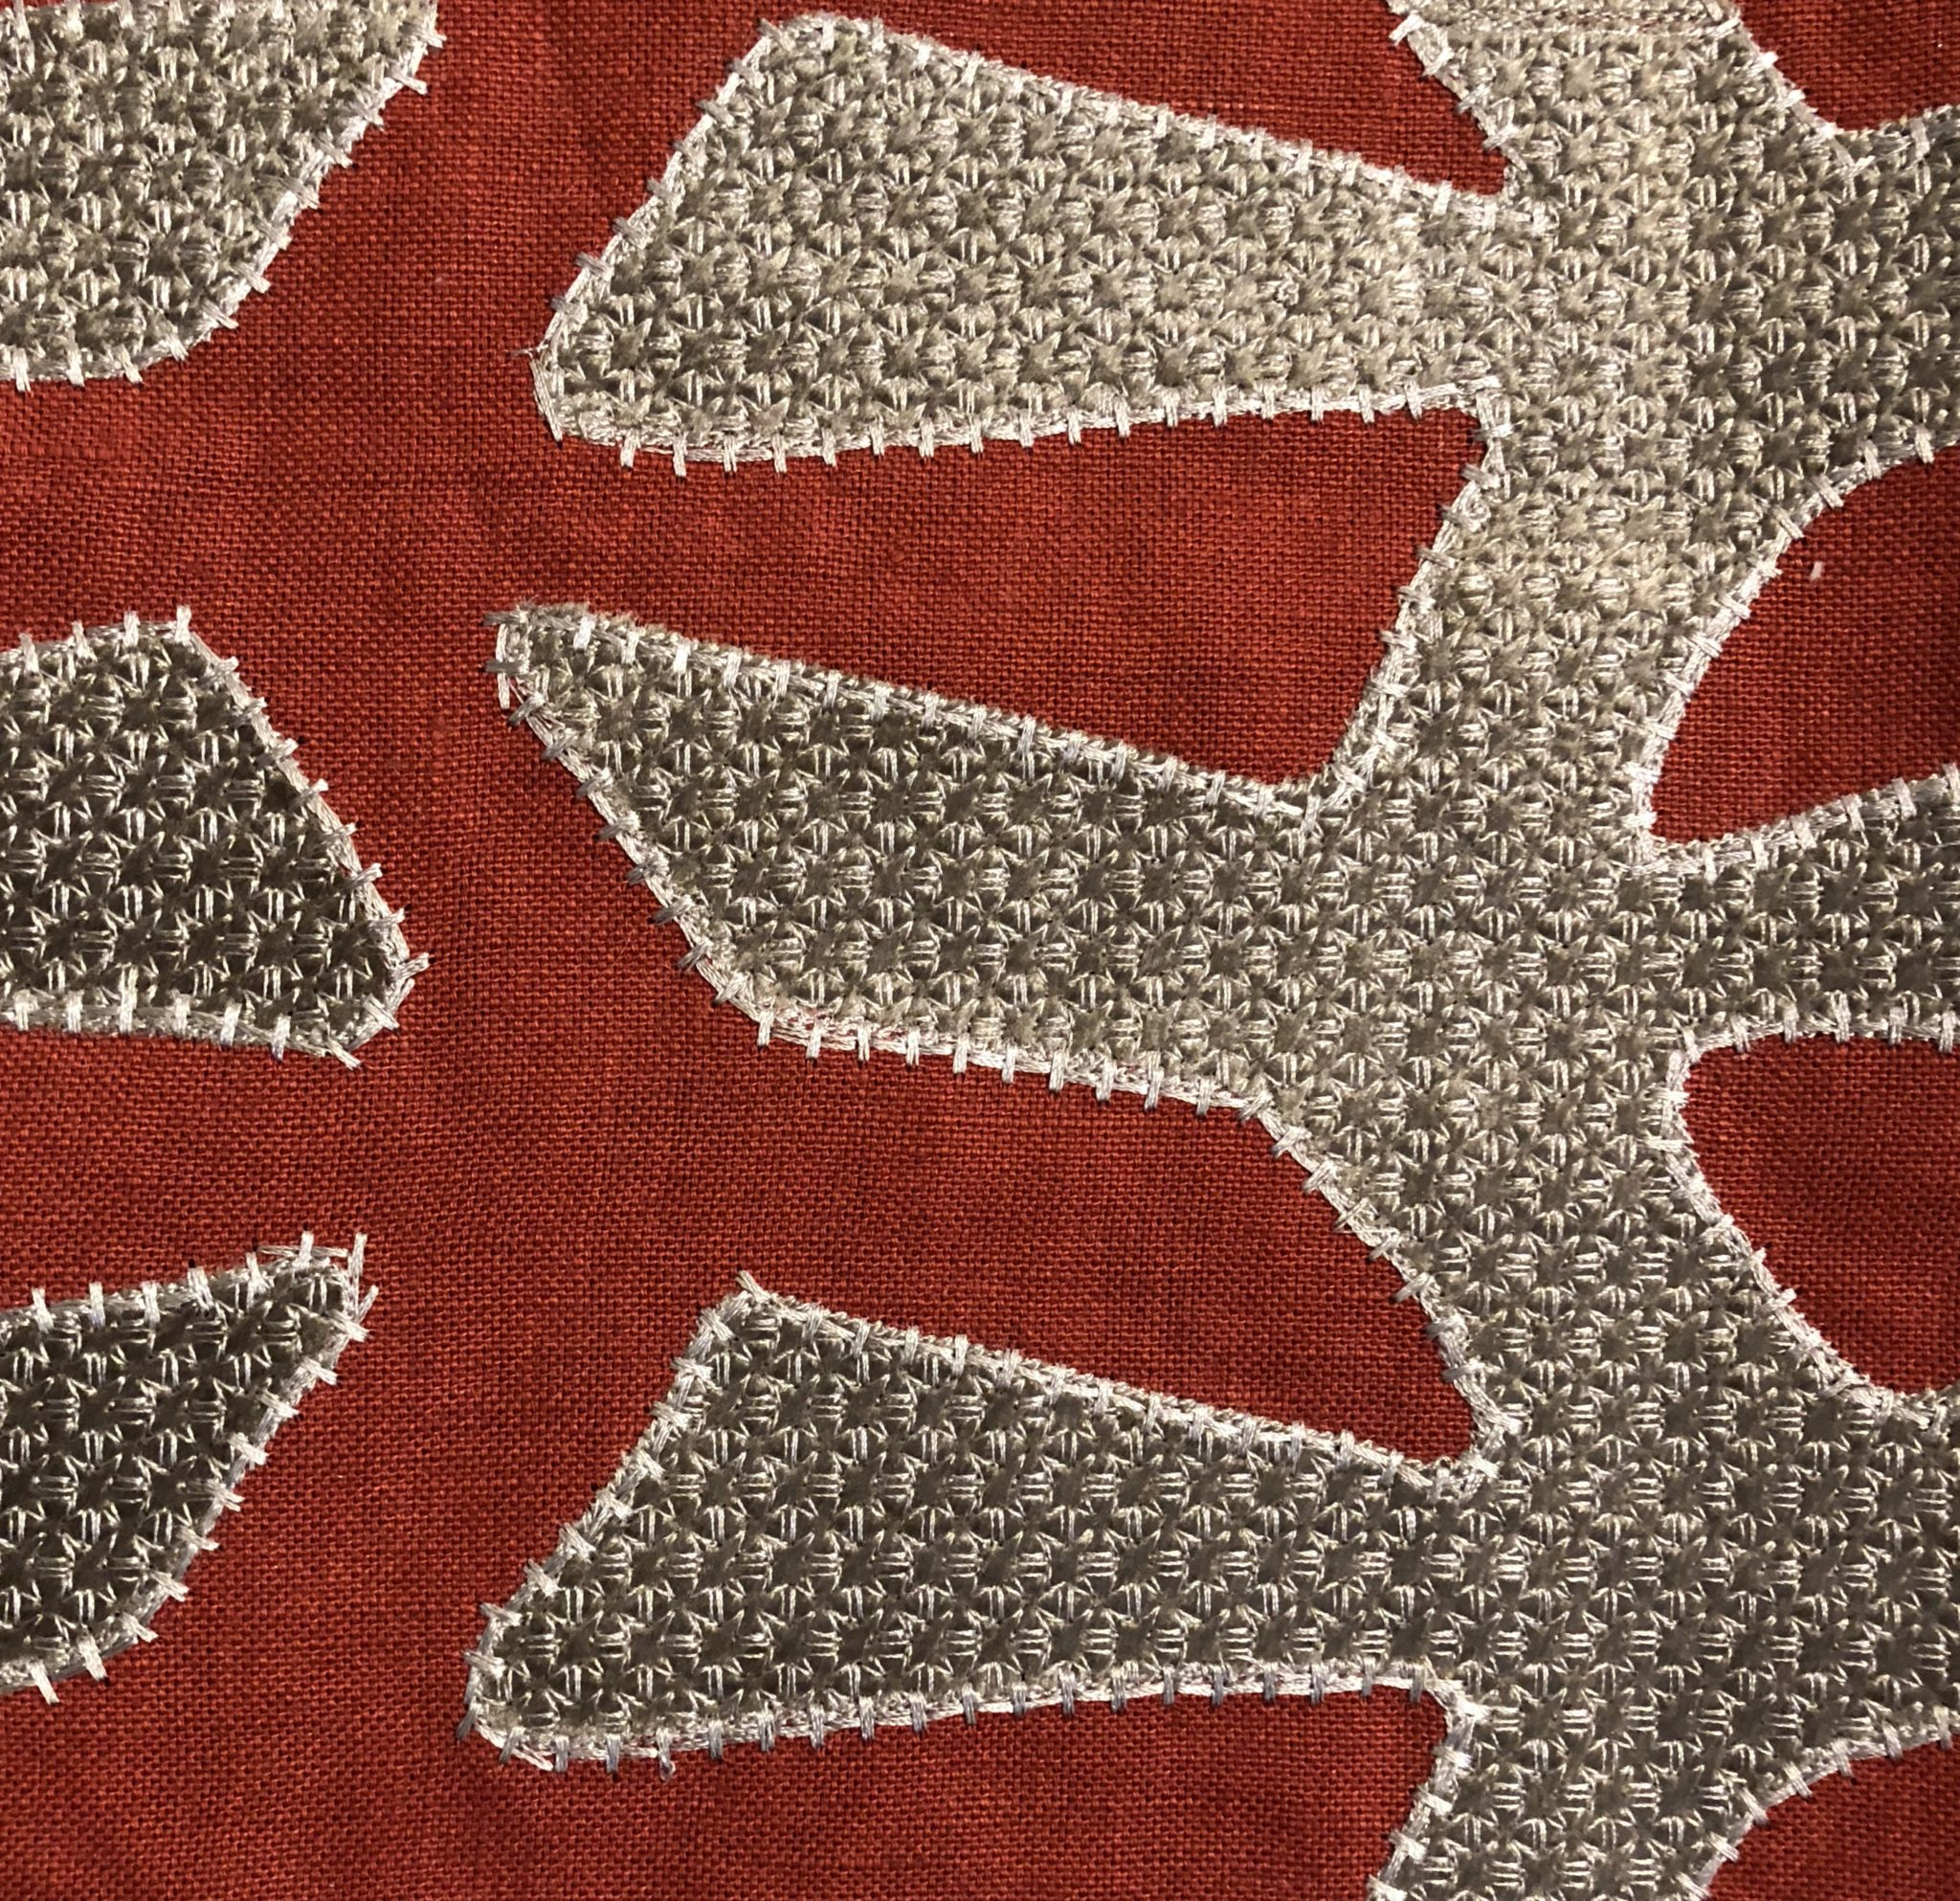 Detail of 'Verdi Applique' (333015 Venetian) from the Icons Collection at Zoffany